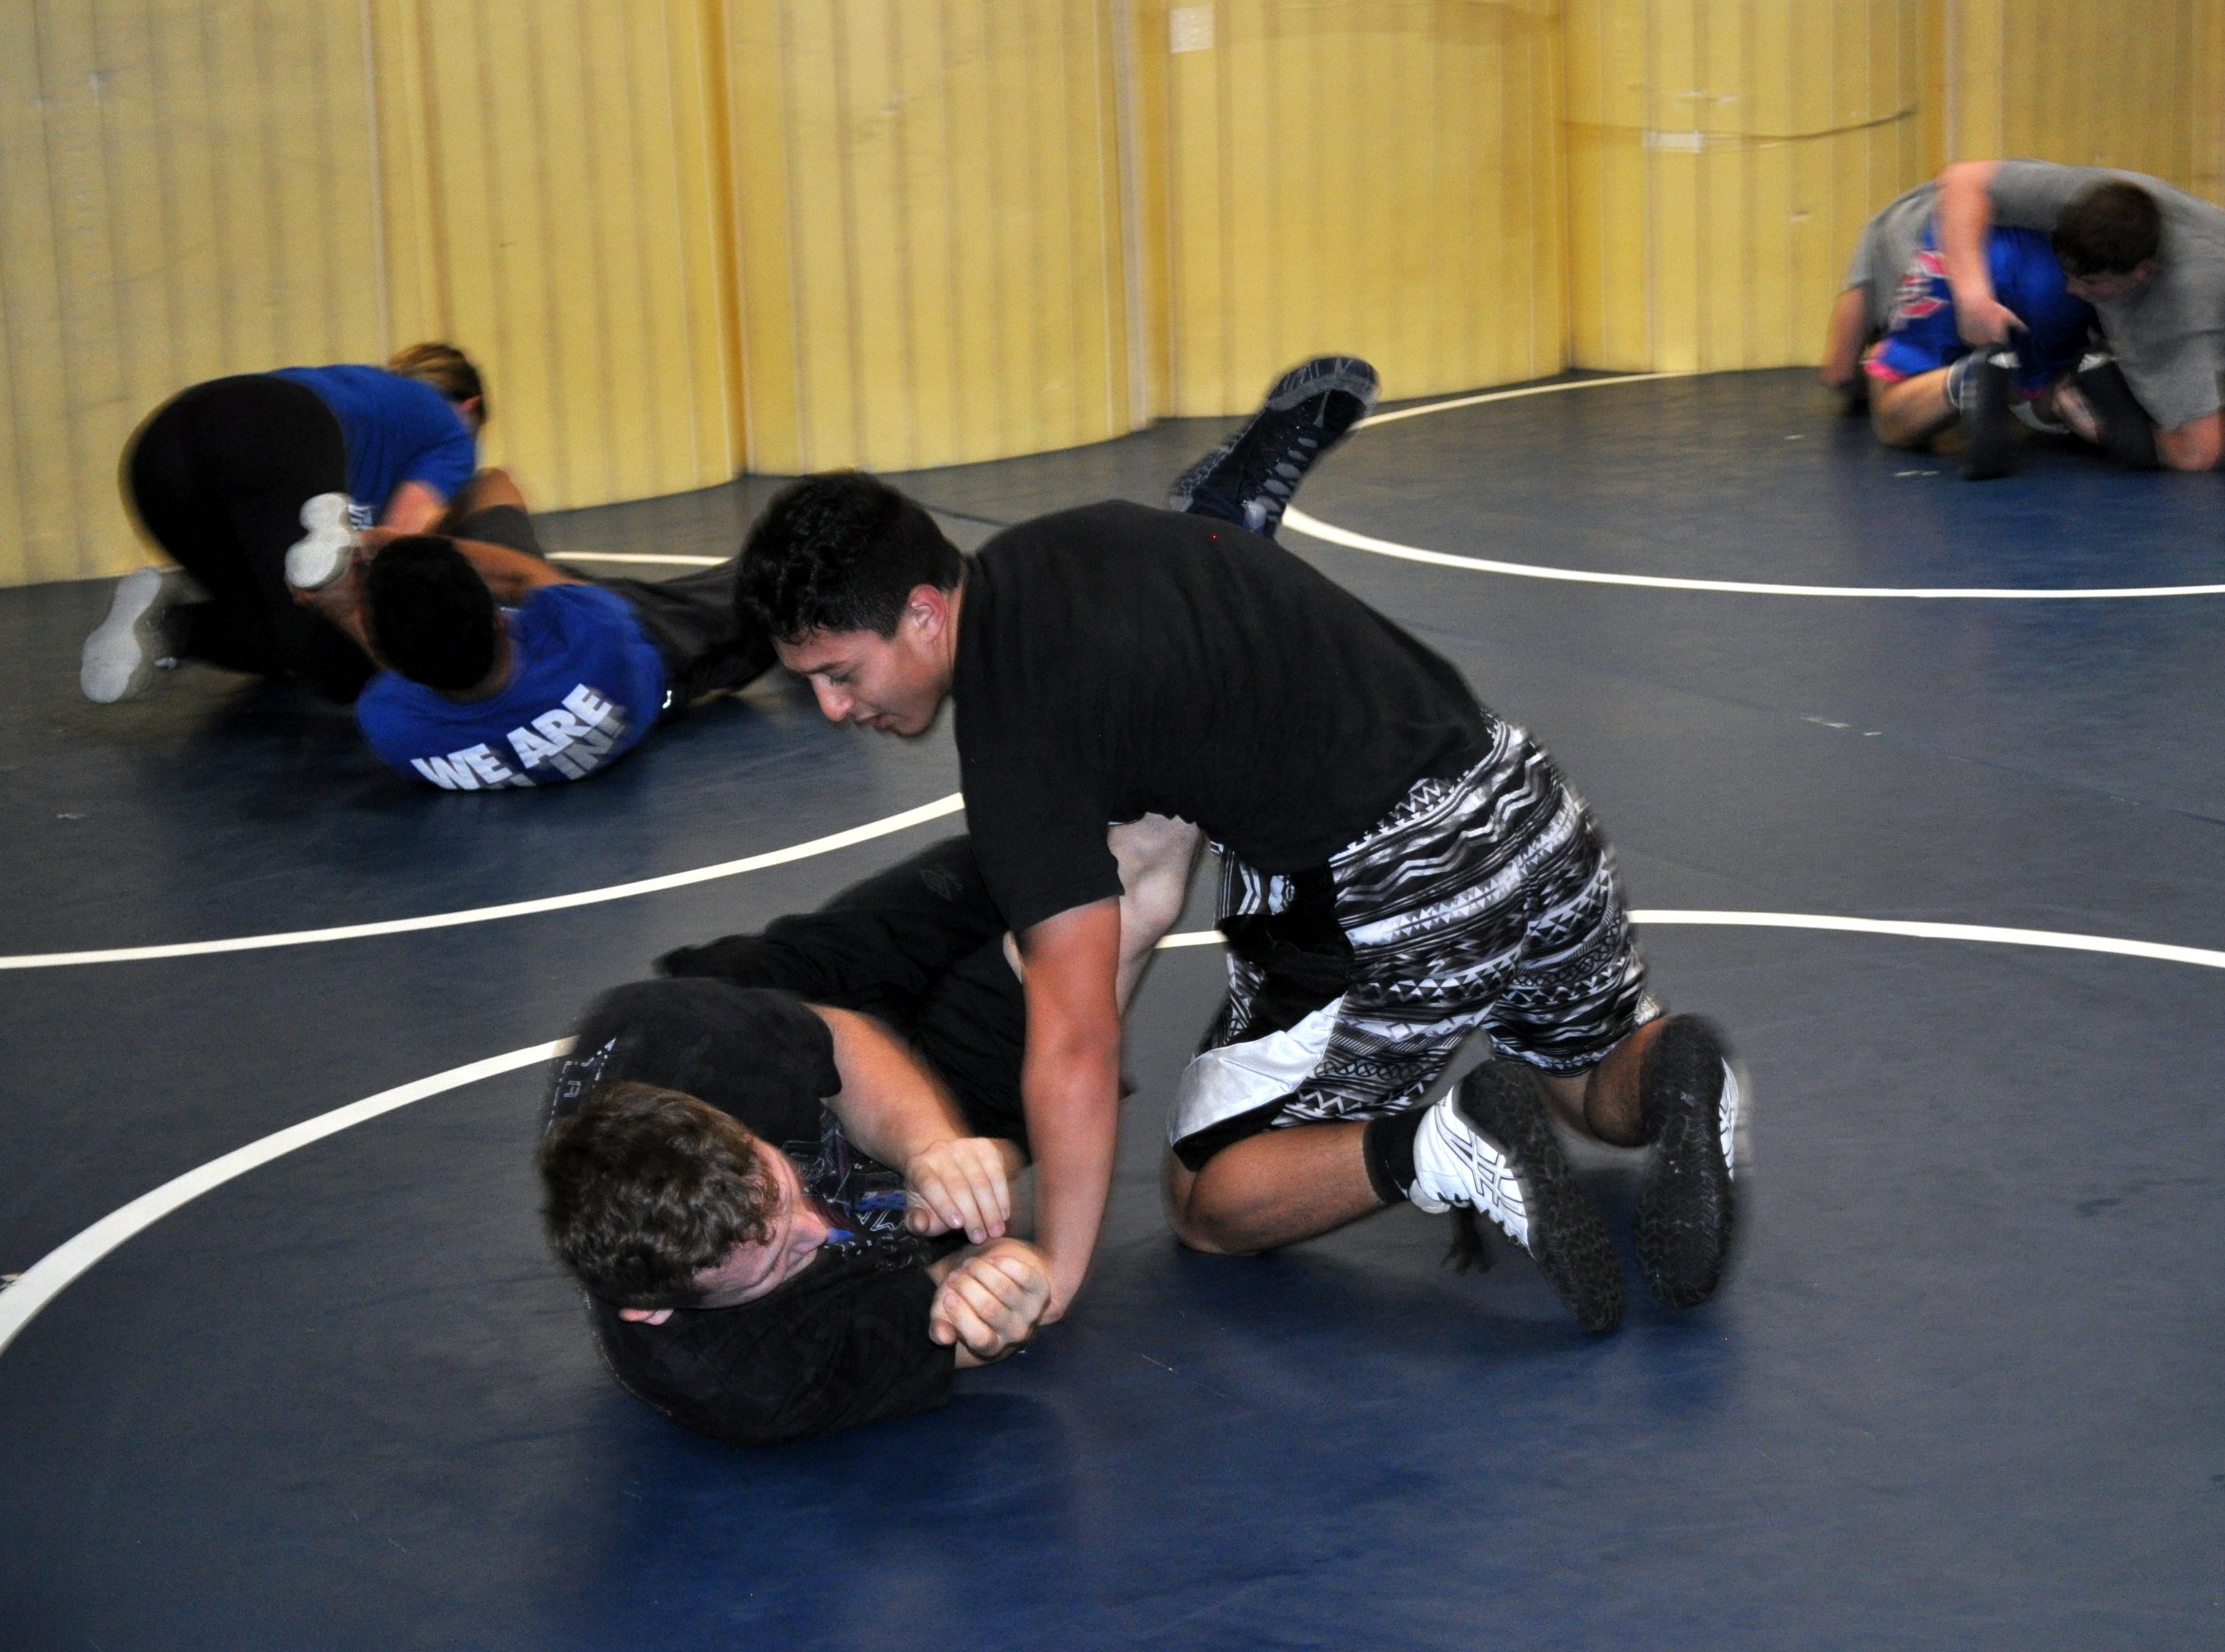 Ivan Villareal (top) and Justin Wood (bottom) get in mat work during Tuesday's practice. Wood finished last year as the state runner-up and is looking for his first title this season.